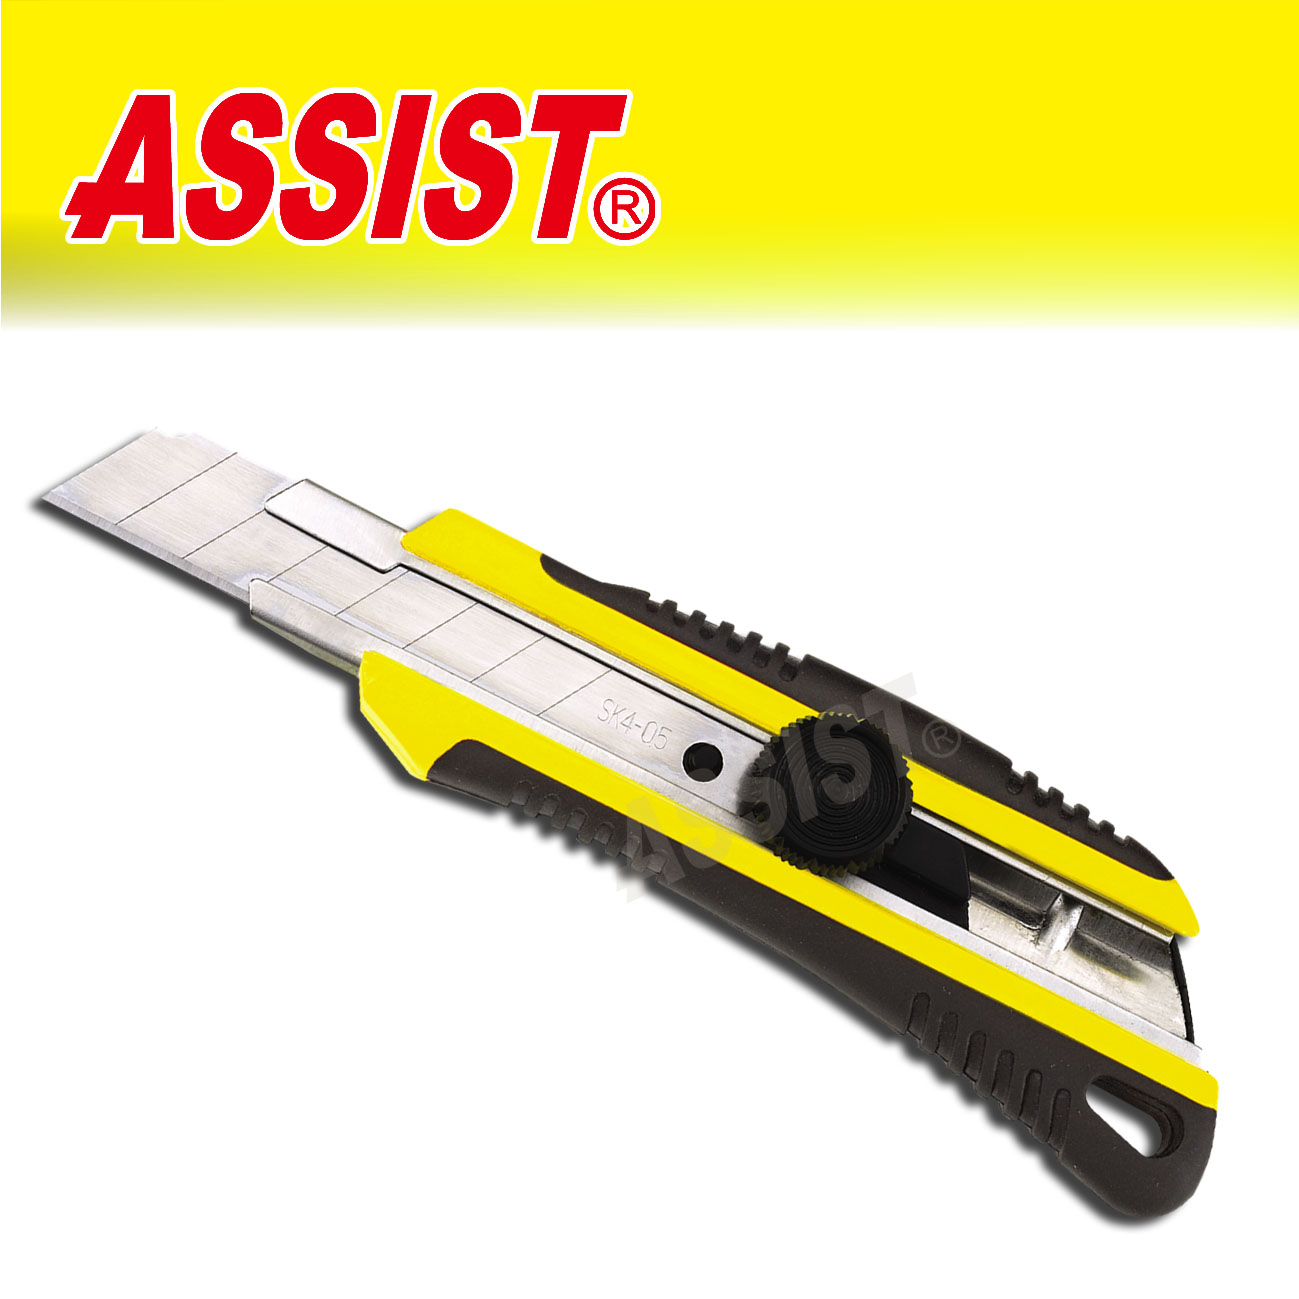 Assist utility knife hot knife cutter ,4pcs easy cut auto-retractable utility knife set